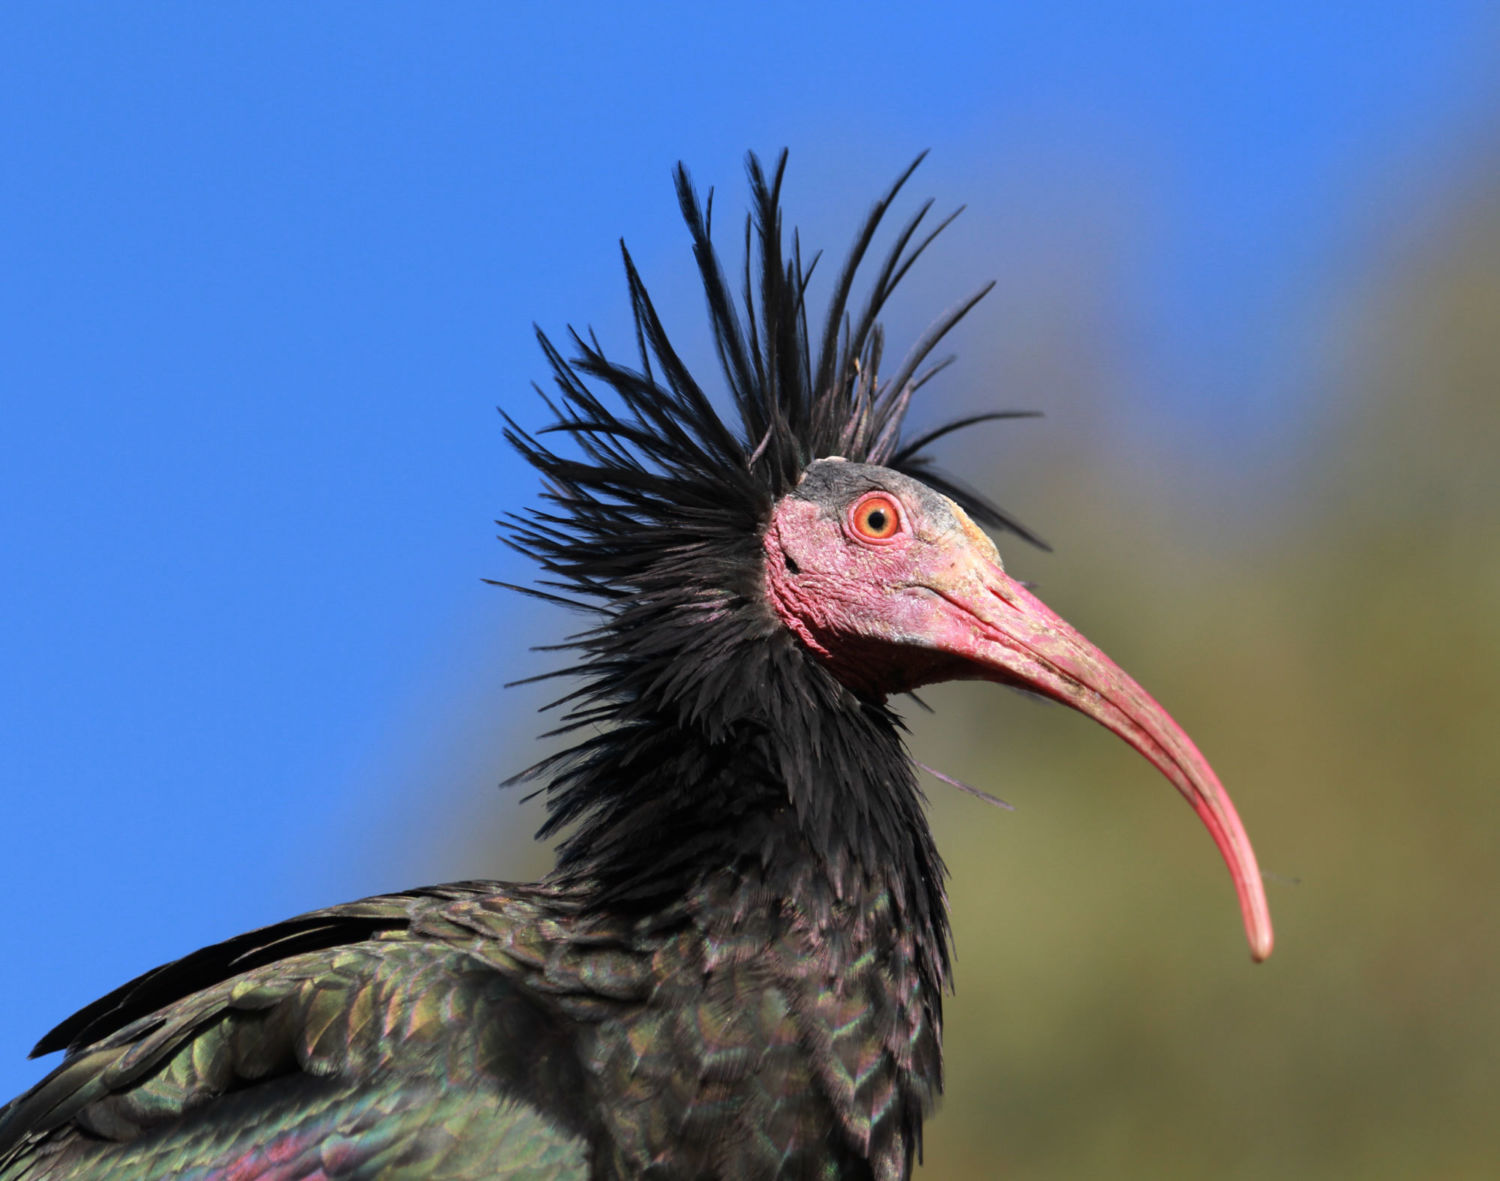 After a 400-Year Absence, A Rare Ibis Returns to European